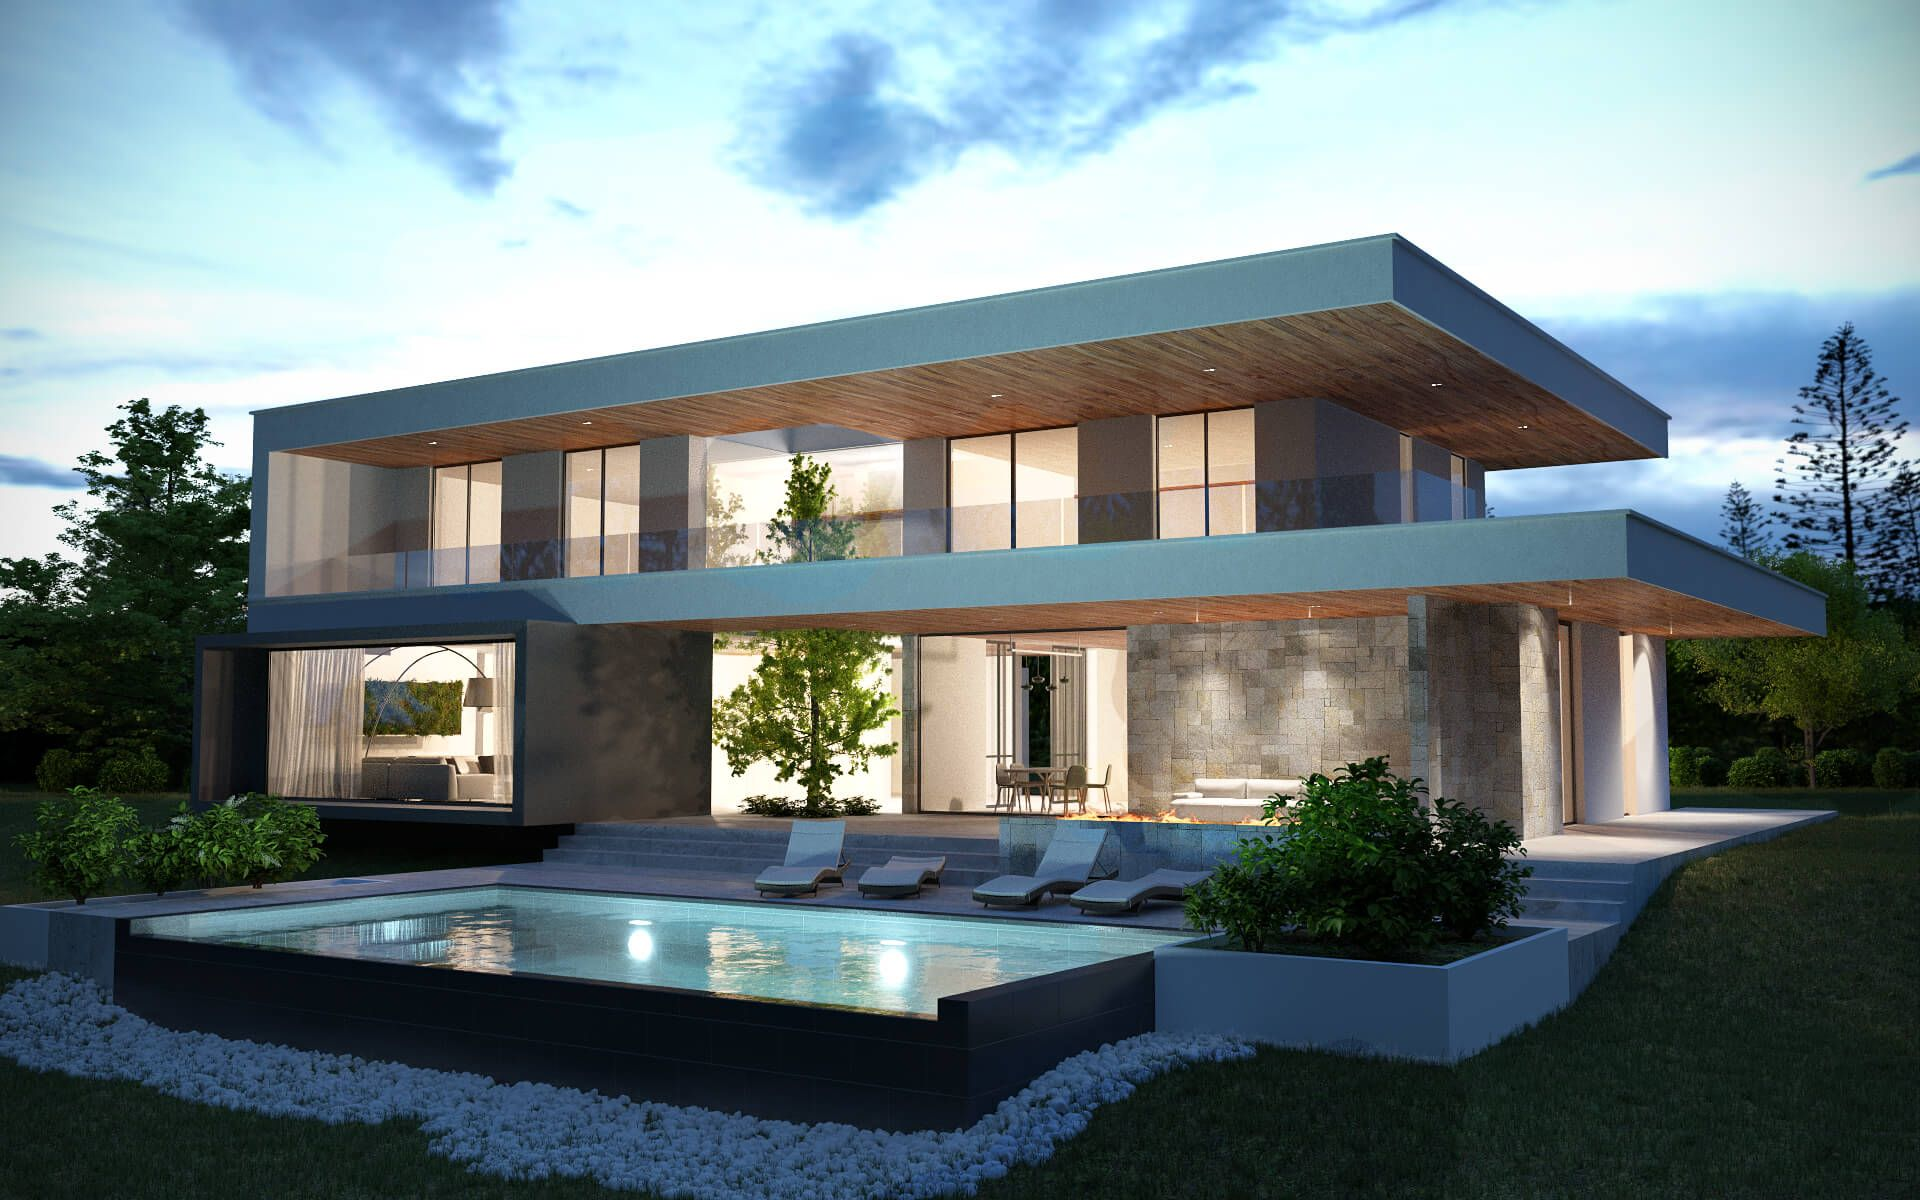 3d house exterior night shot vue 3d ext rieure nuit for Architecture 3d vue 3d